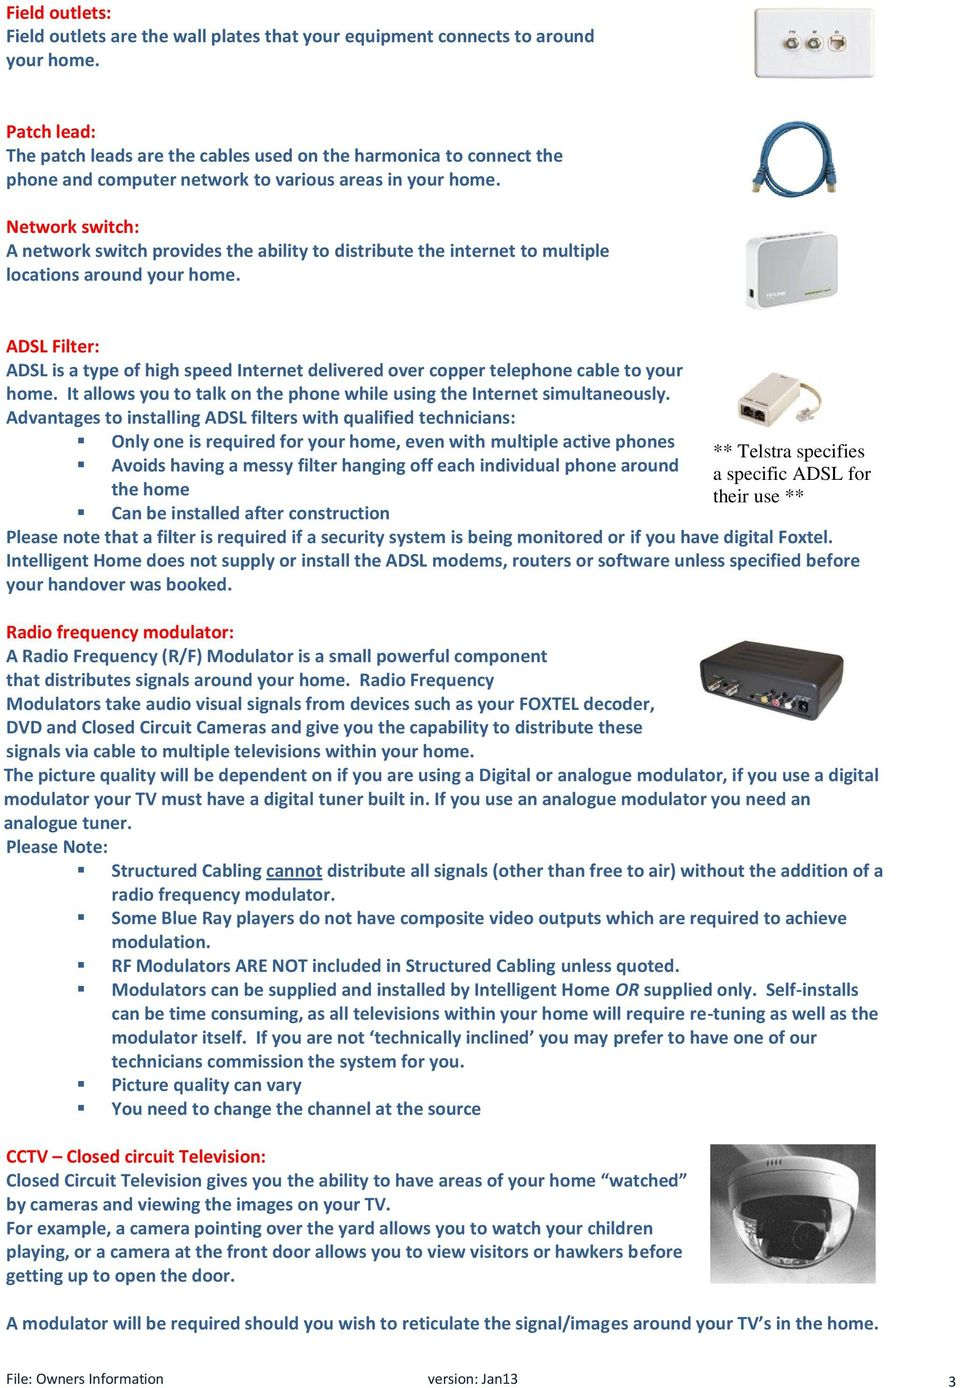 Owners Manual Contents Introduction 2 Definitions Smartwire Because All Switches In This Closedcircuit System Are A Wiring Network Switch Provides The Ability To Distribute Internet Multiple Locations